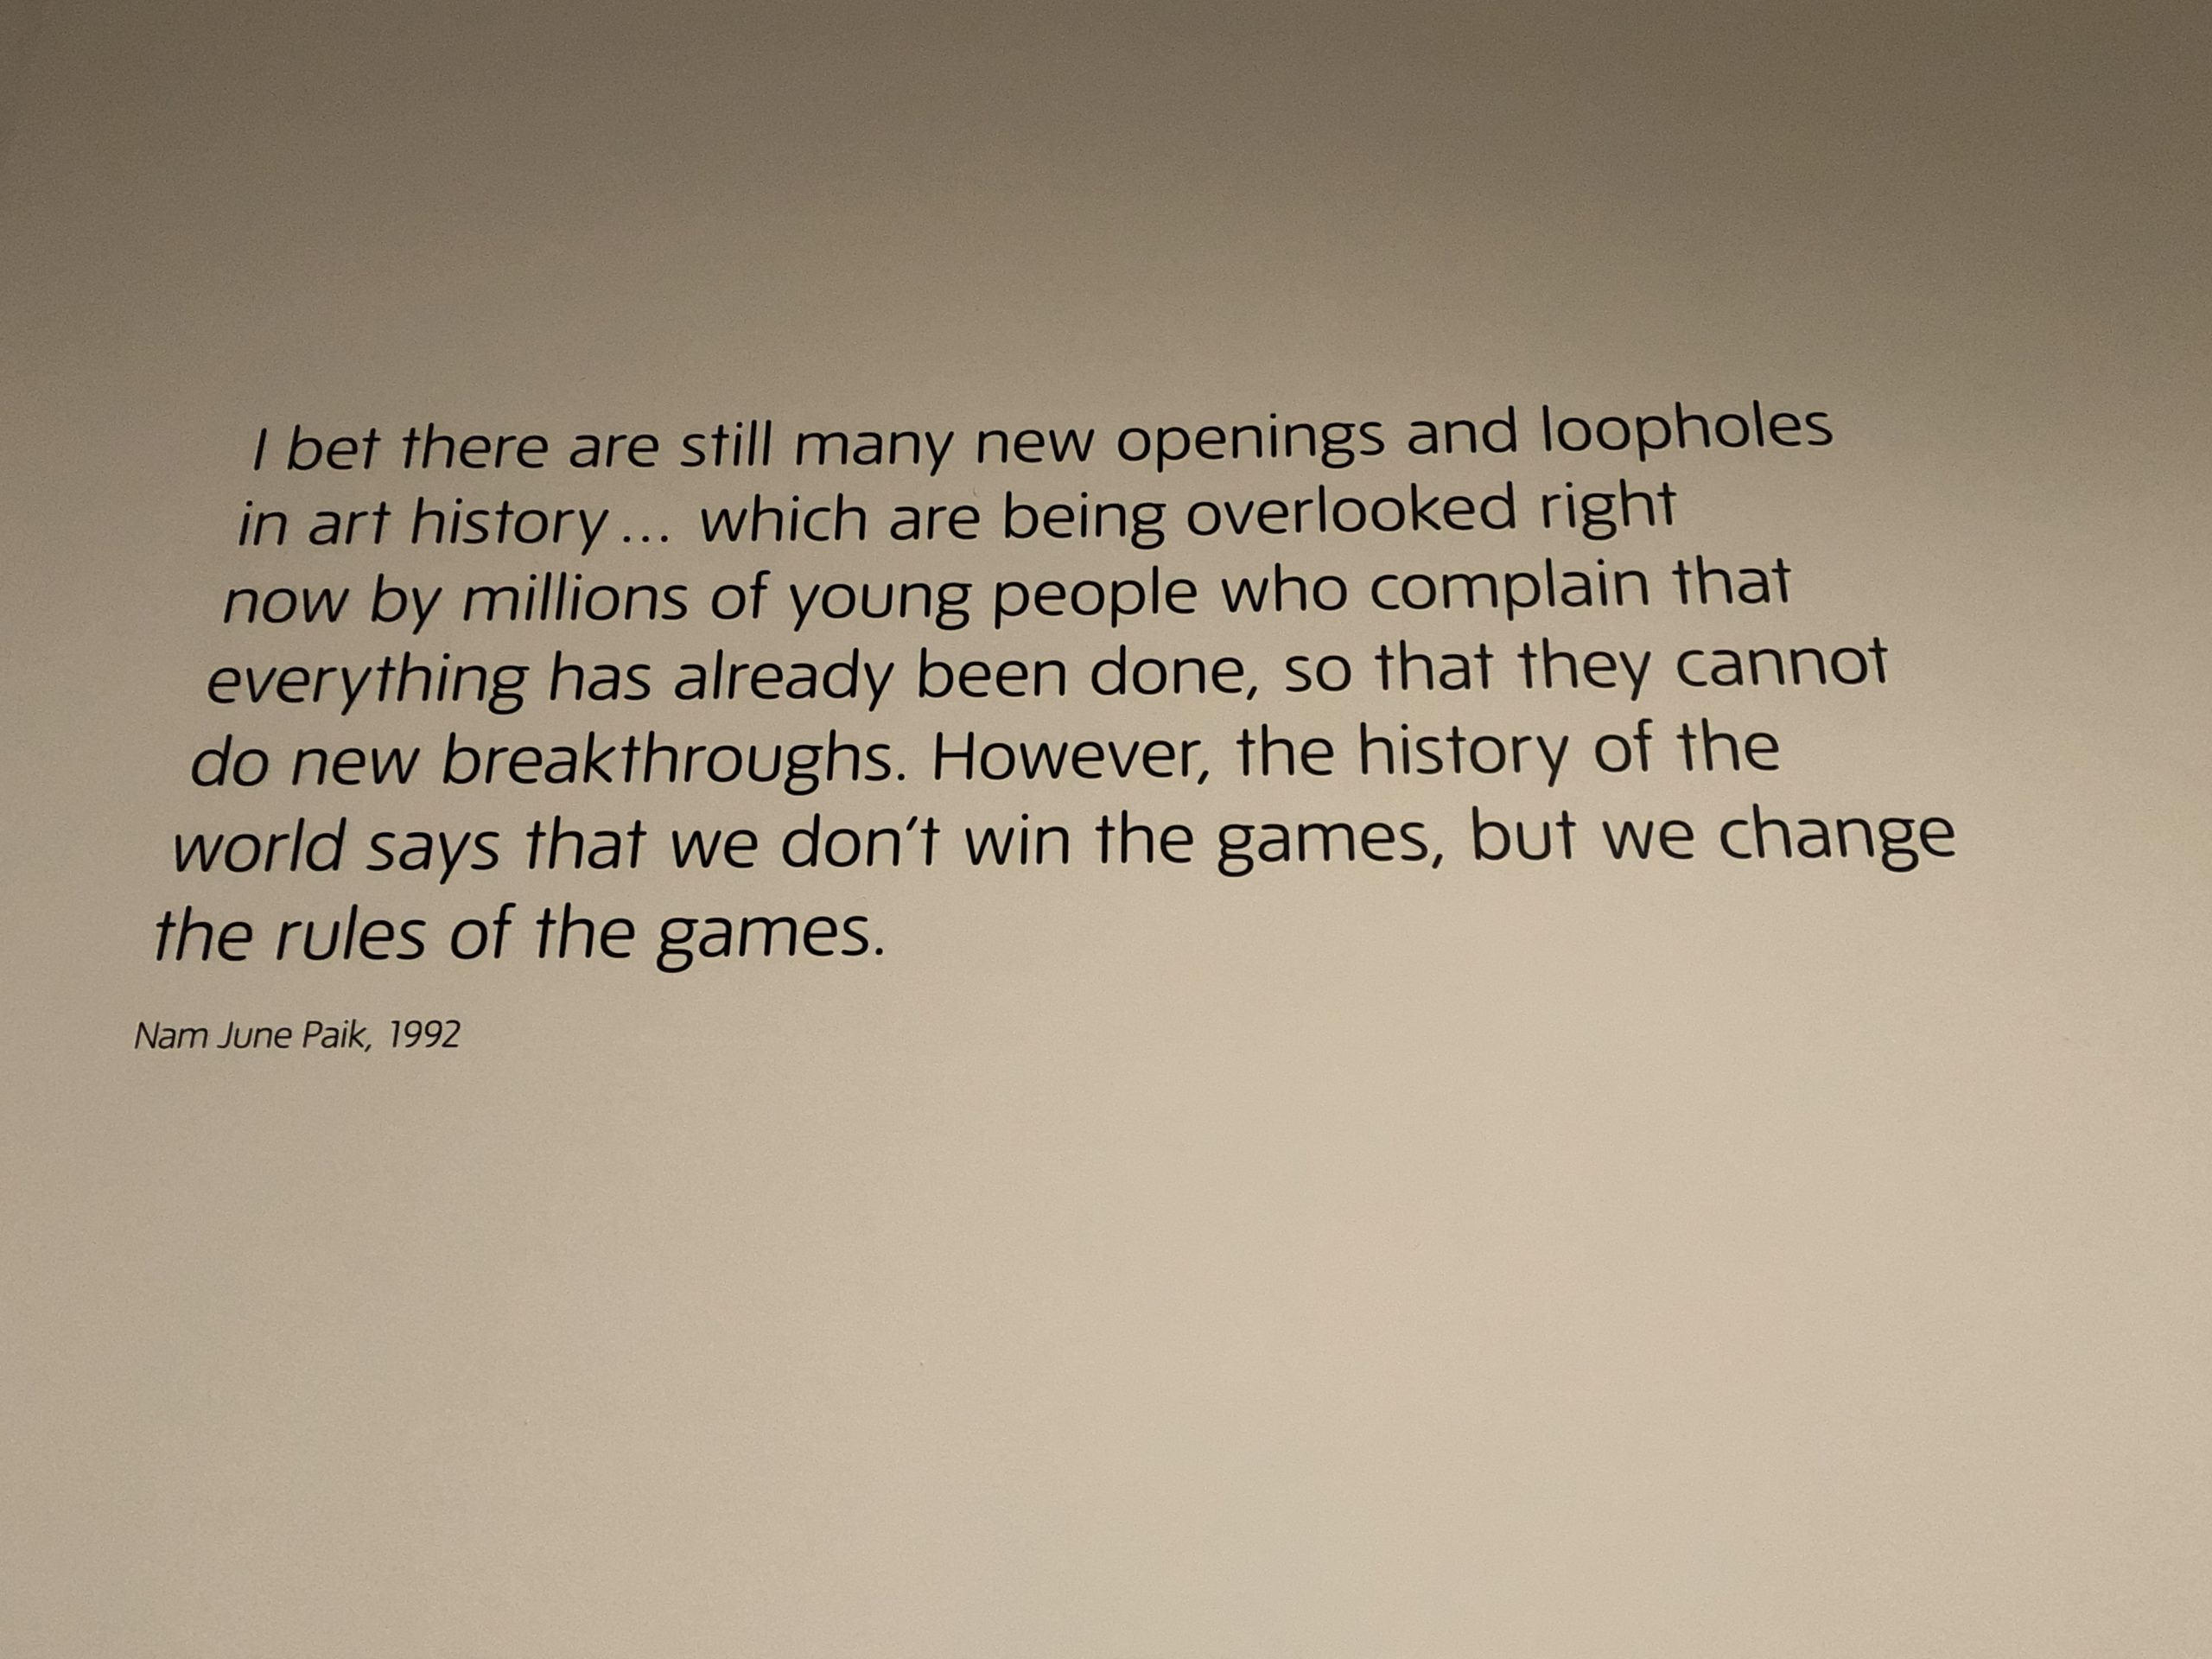 Image of a quote made by artist Nam June Paik